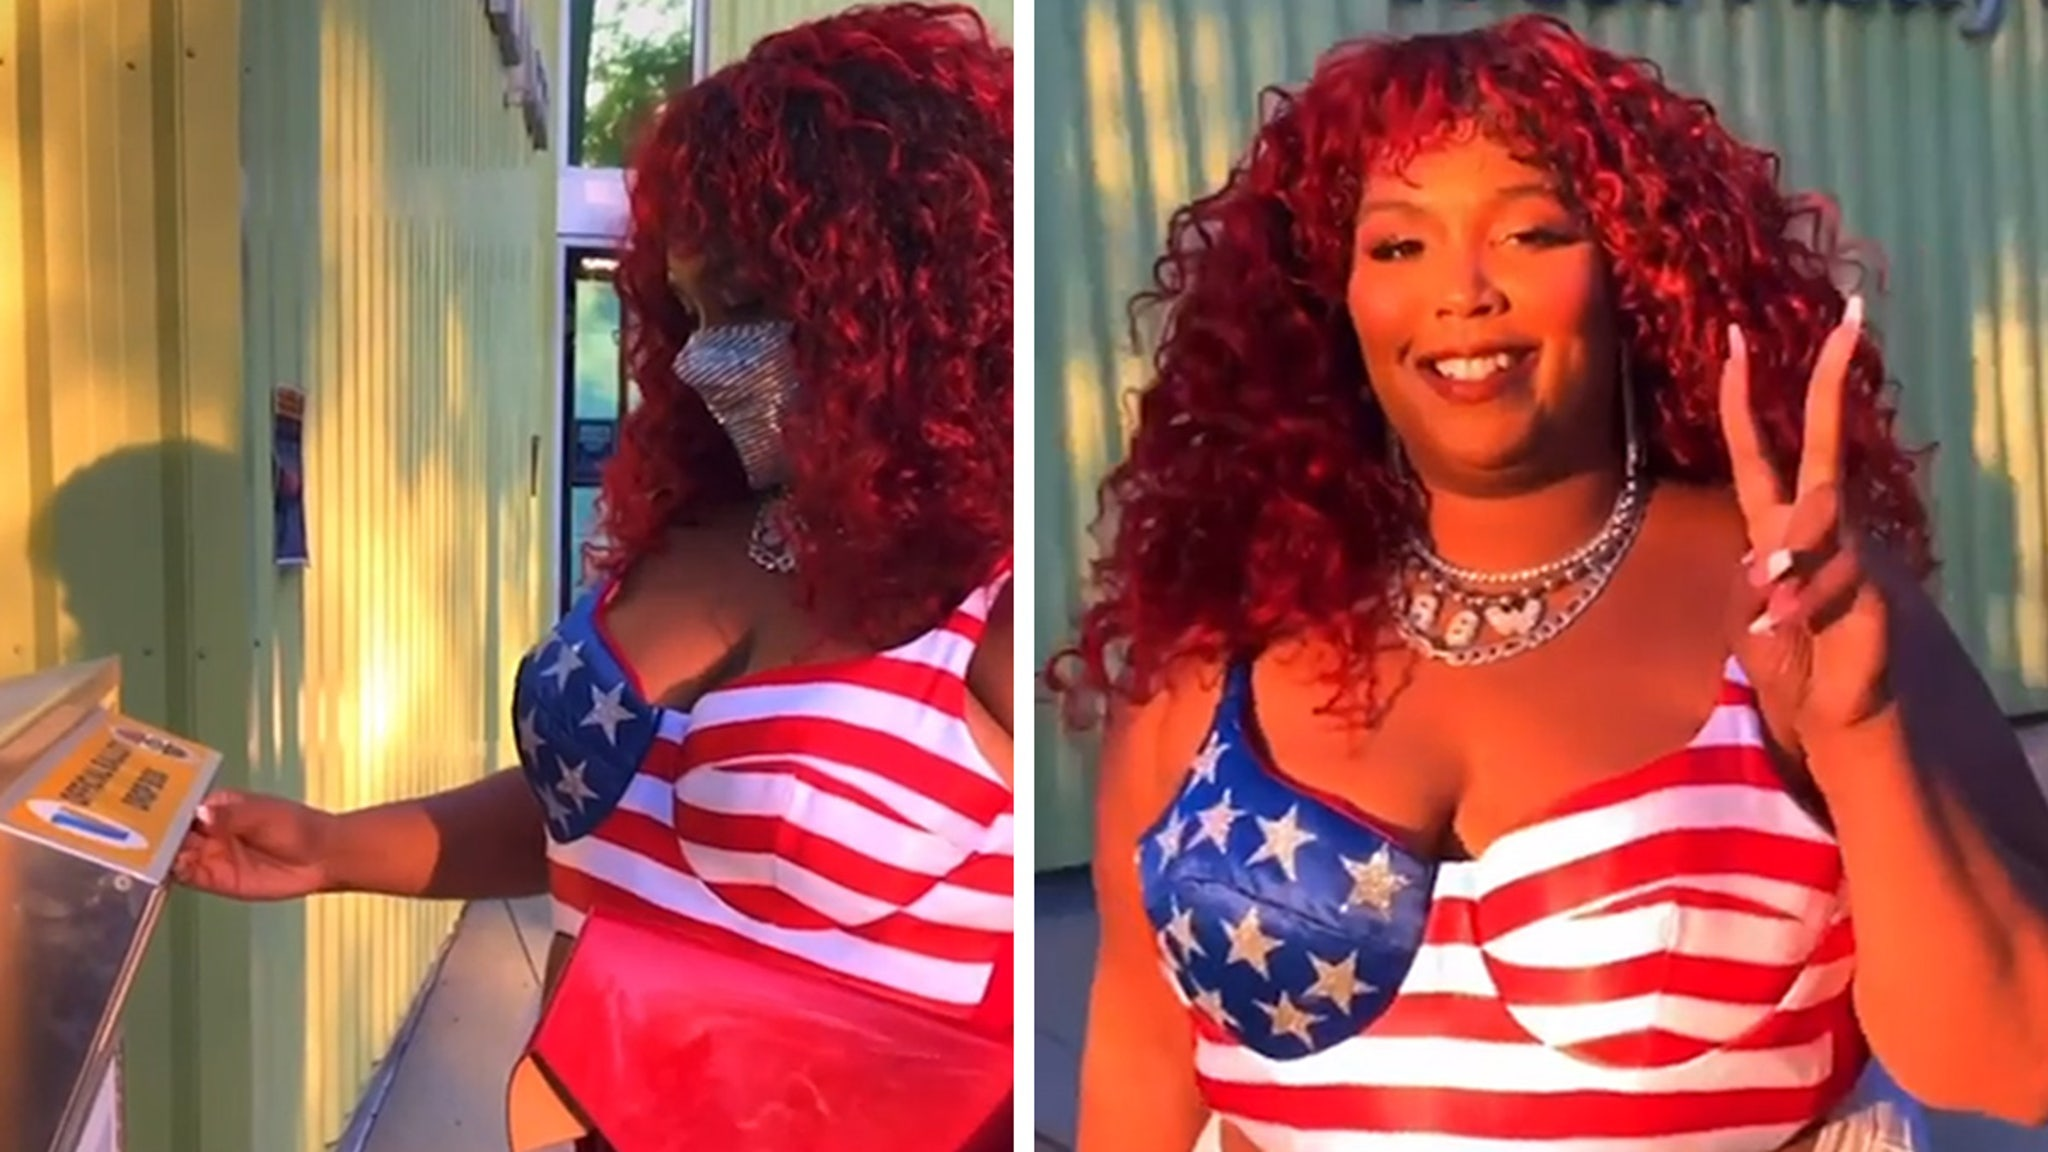 Lizzo I'm 100% That Voter